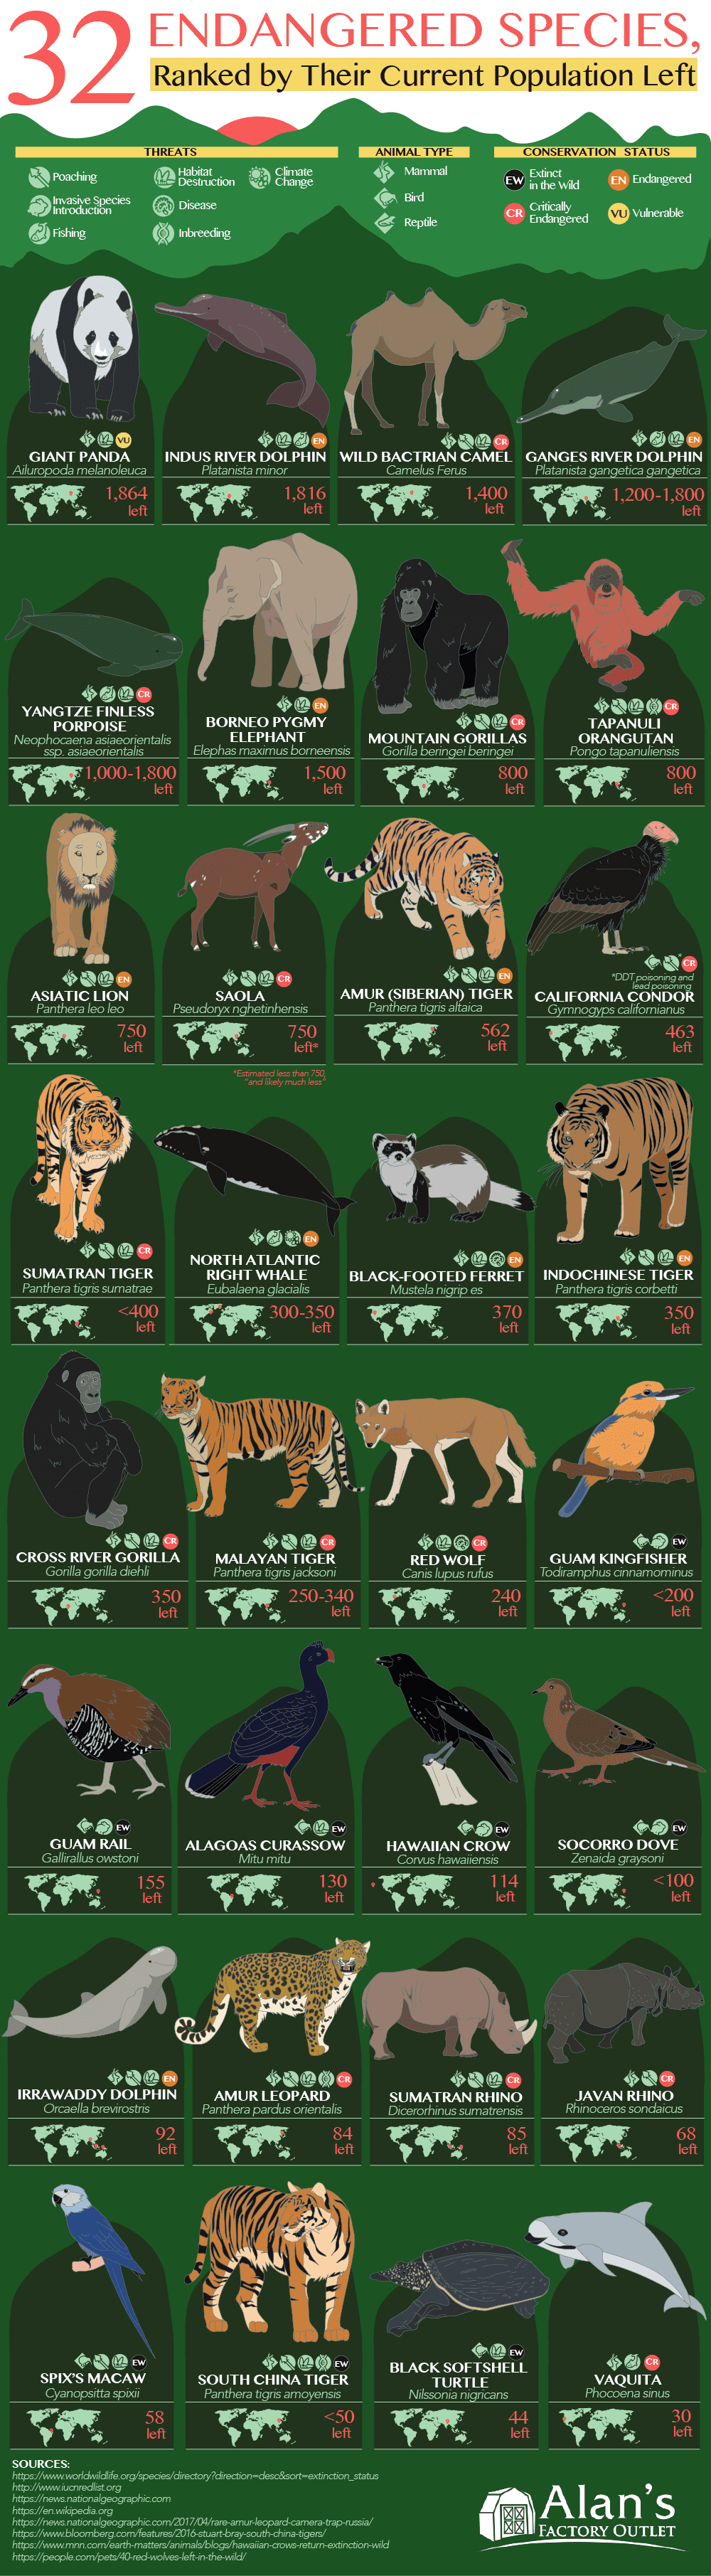 32 Animals That Are Going to Be Extinct Soon (Endangered Species Ranked by Current Population Left)